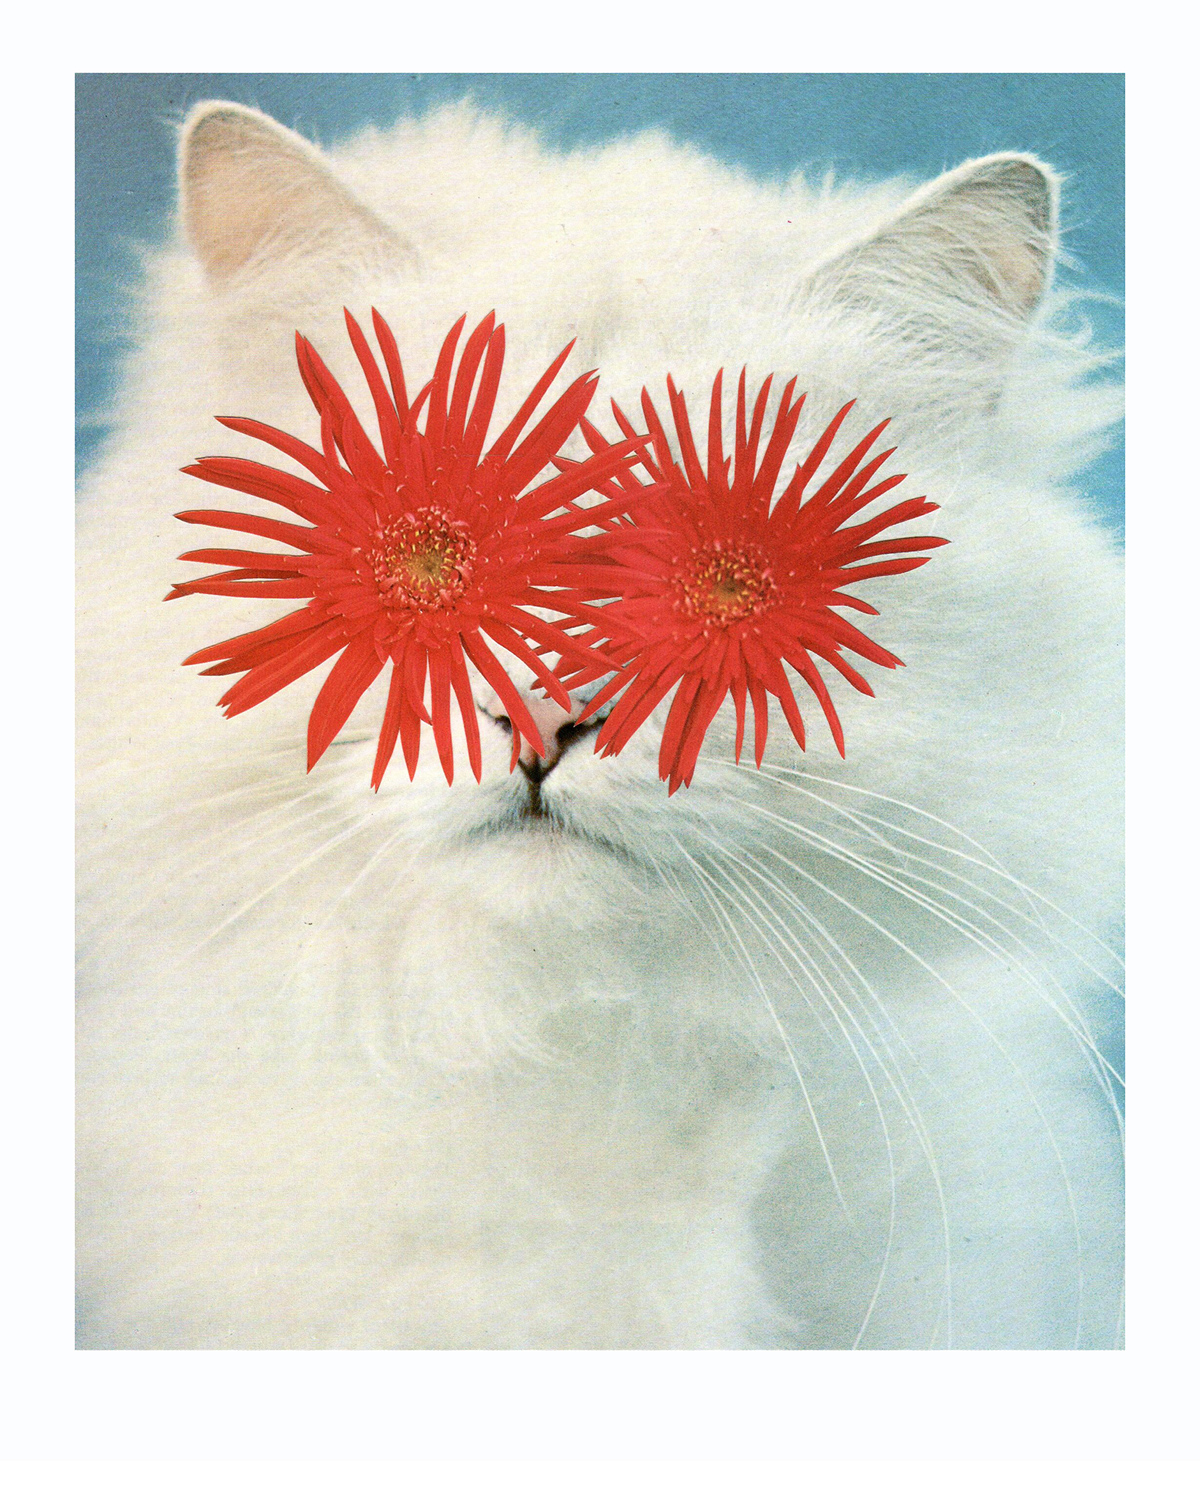 Photomontage - Stephen Eichhorn - Cats & Plants - Red Eyes 2010